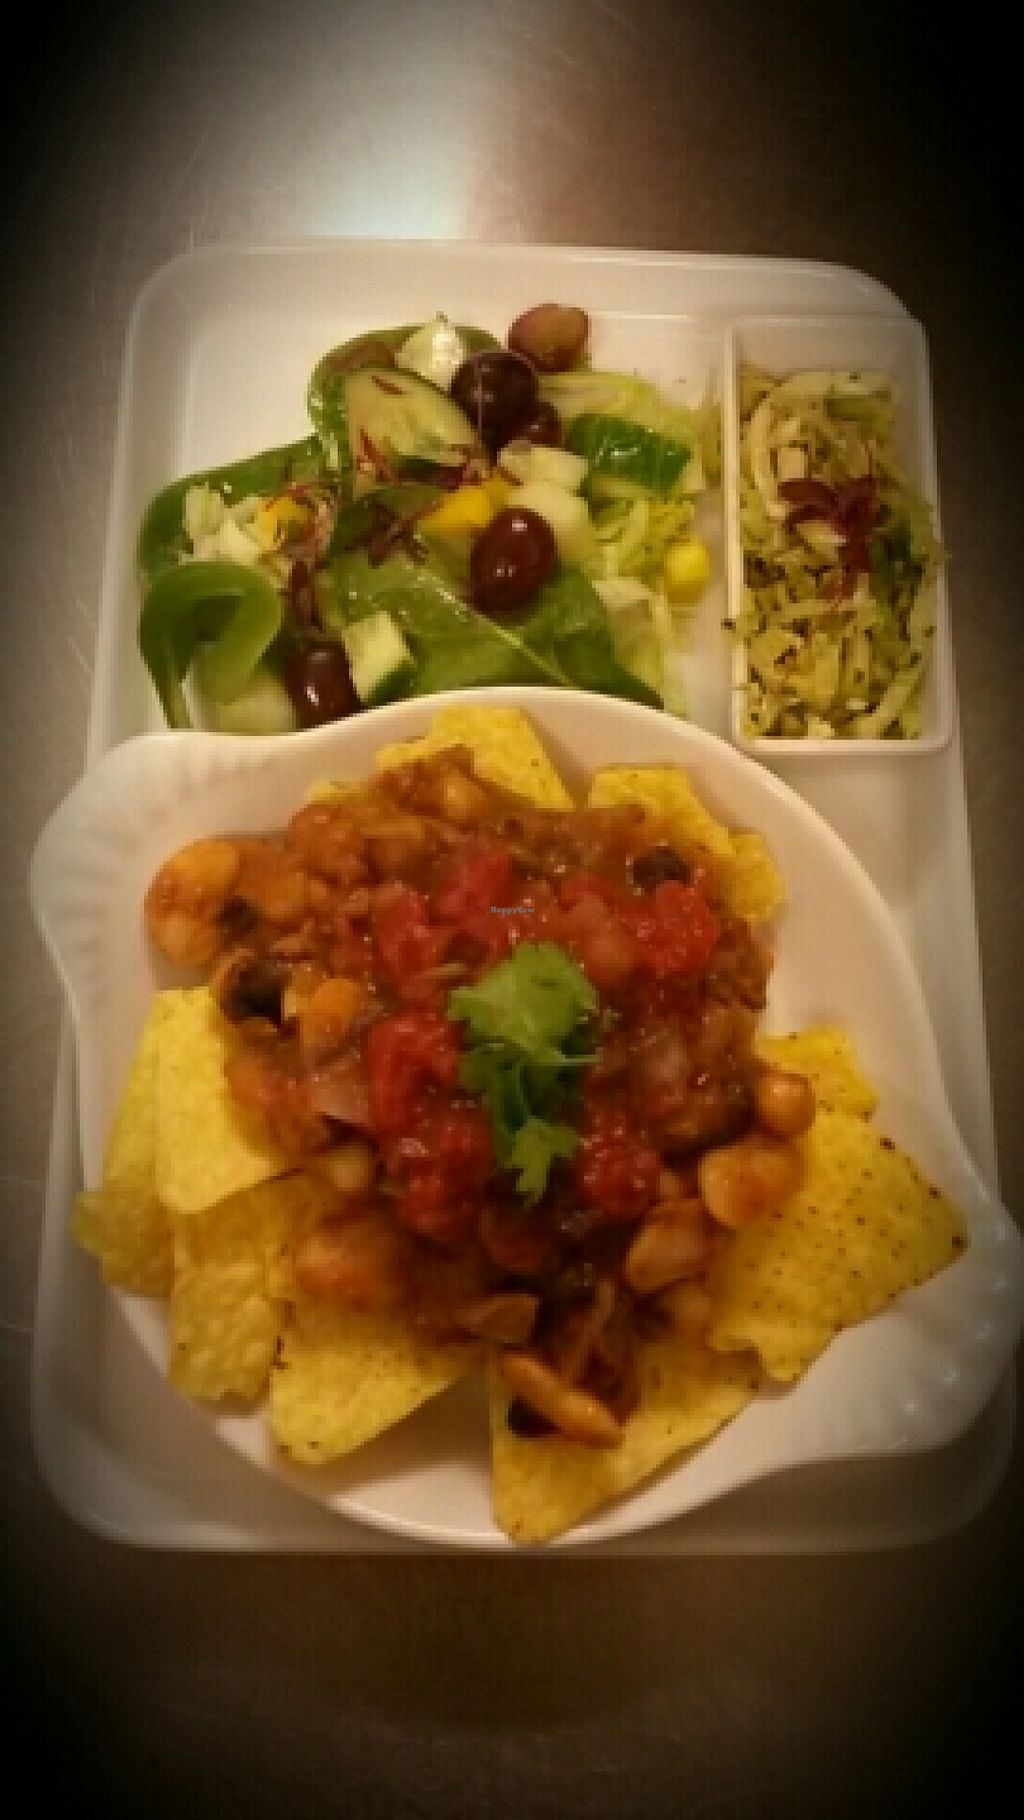 "Photo of Taste of Shrewsbury  by <a href=""/members/profile/sarahjj"">sarahjj</a> <br/>Vegan nachos: mixed bean chilli,homemade salsa,salad and green slaw  <br/> April 26, 2016  - <a href='/contact/abuse/image/68928/146320'>Report</a>"